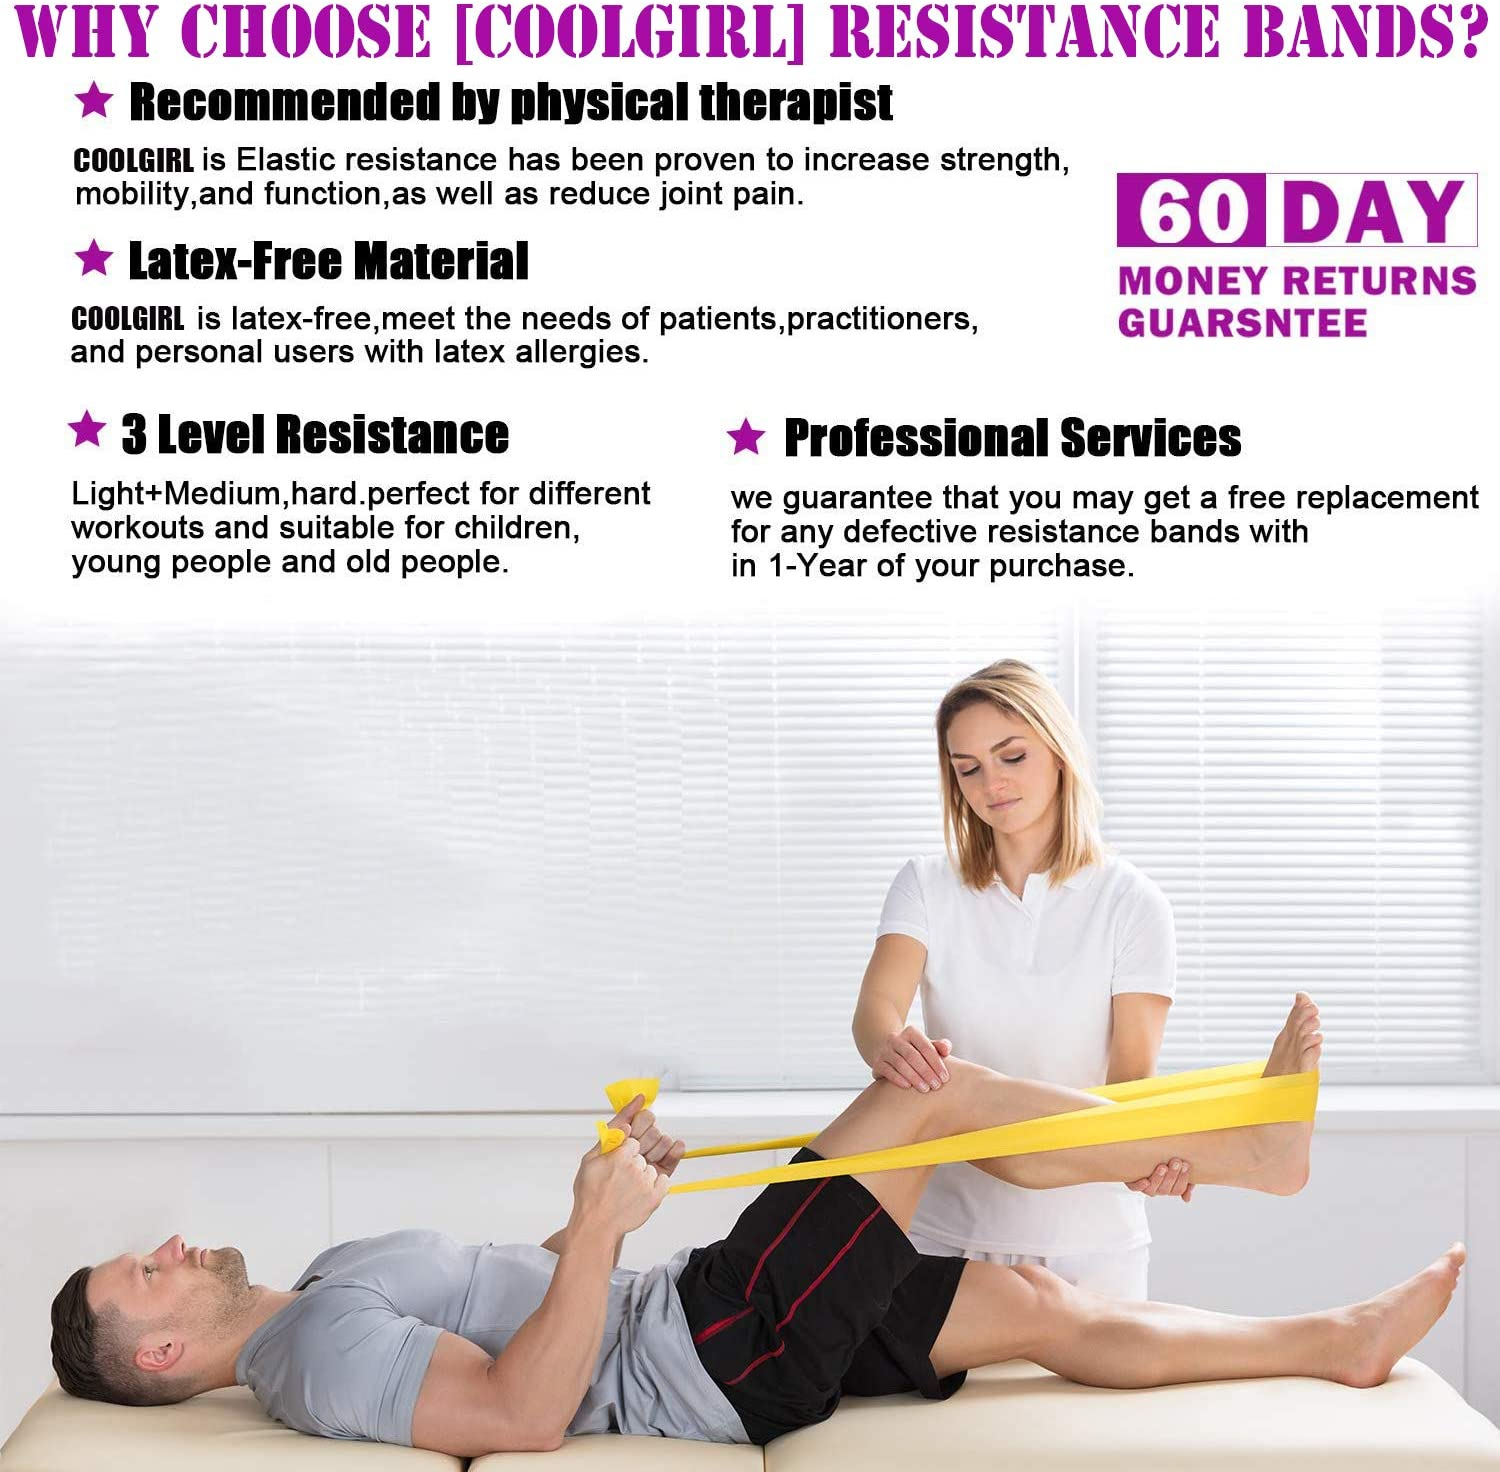 Resistance Bands for Legs Butt Arms Shoulder Yoga Pilates Physical Therapy EXERCISE RESISTANCE BAND LATEX FREE Workout Stretch Bands for Men Women Seniors Kids Exercises Chart 6.5ft